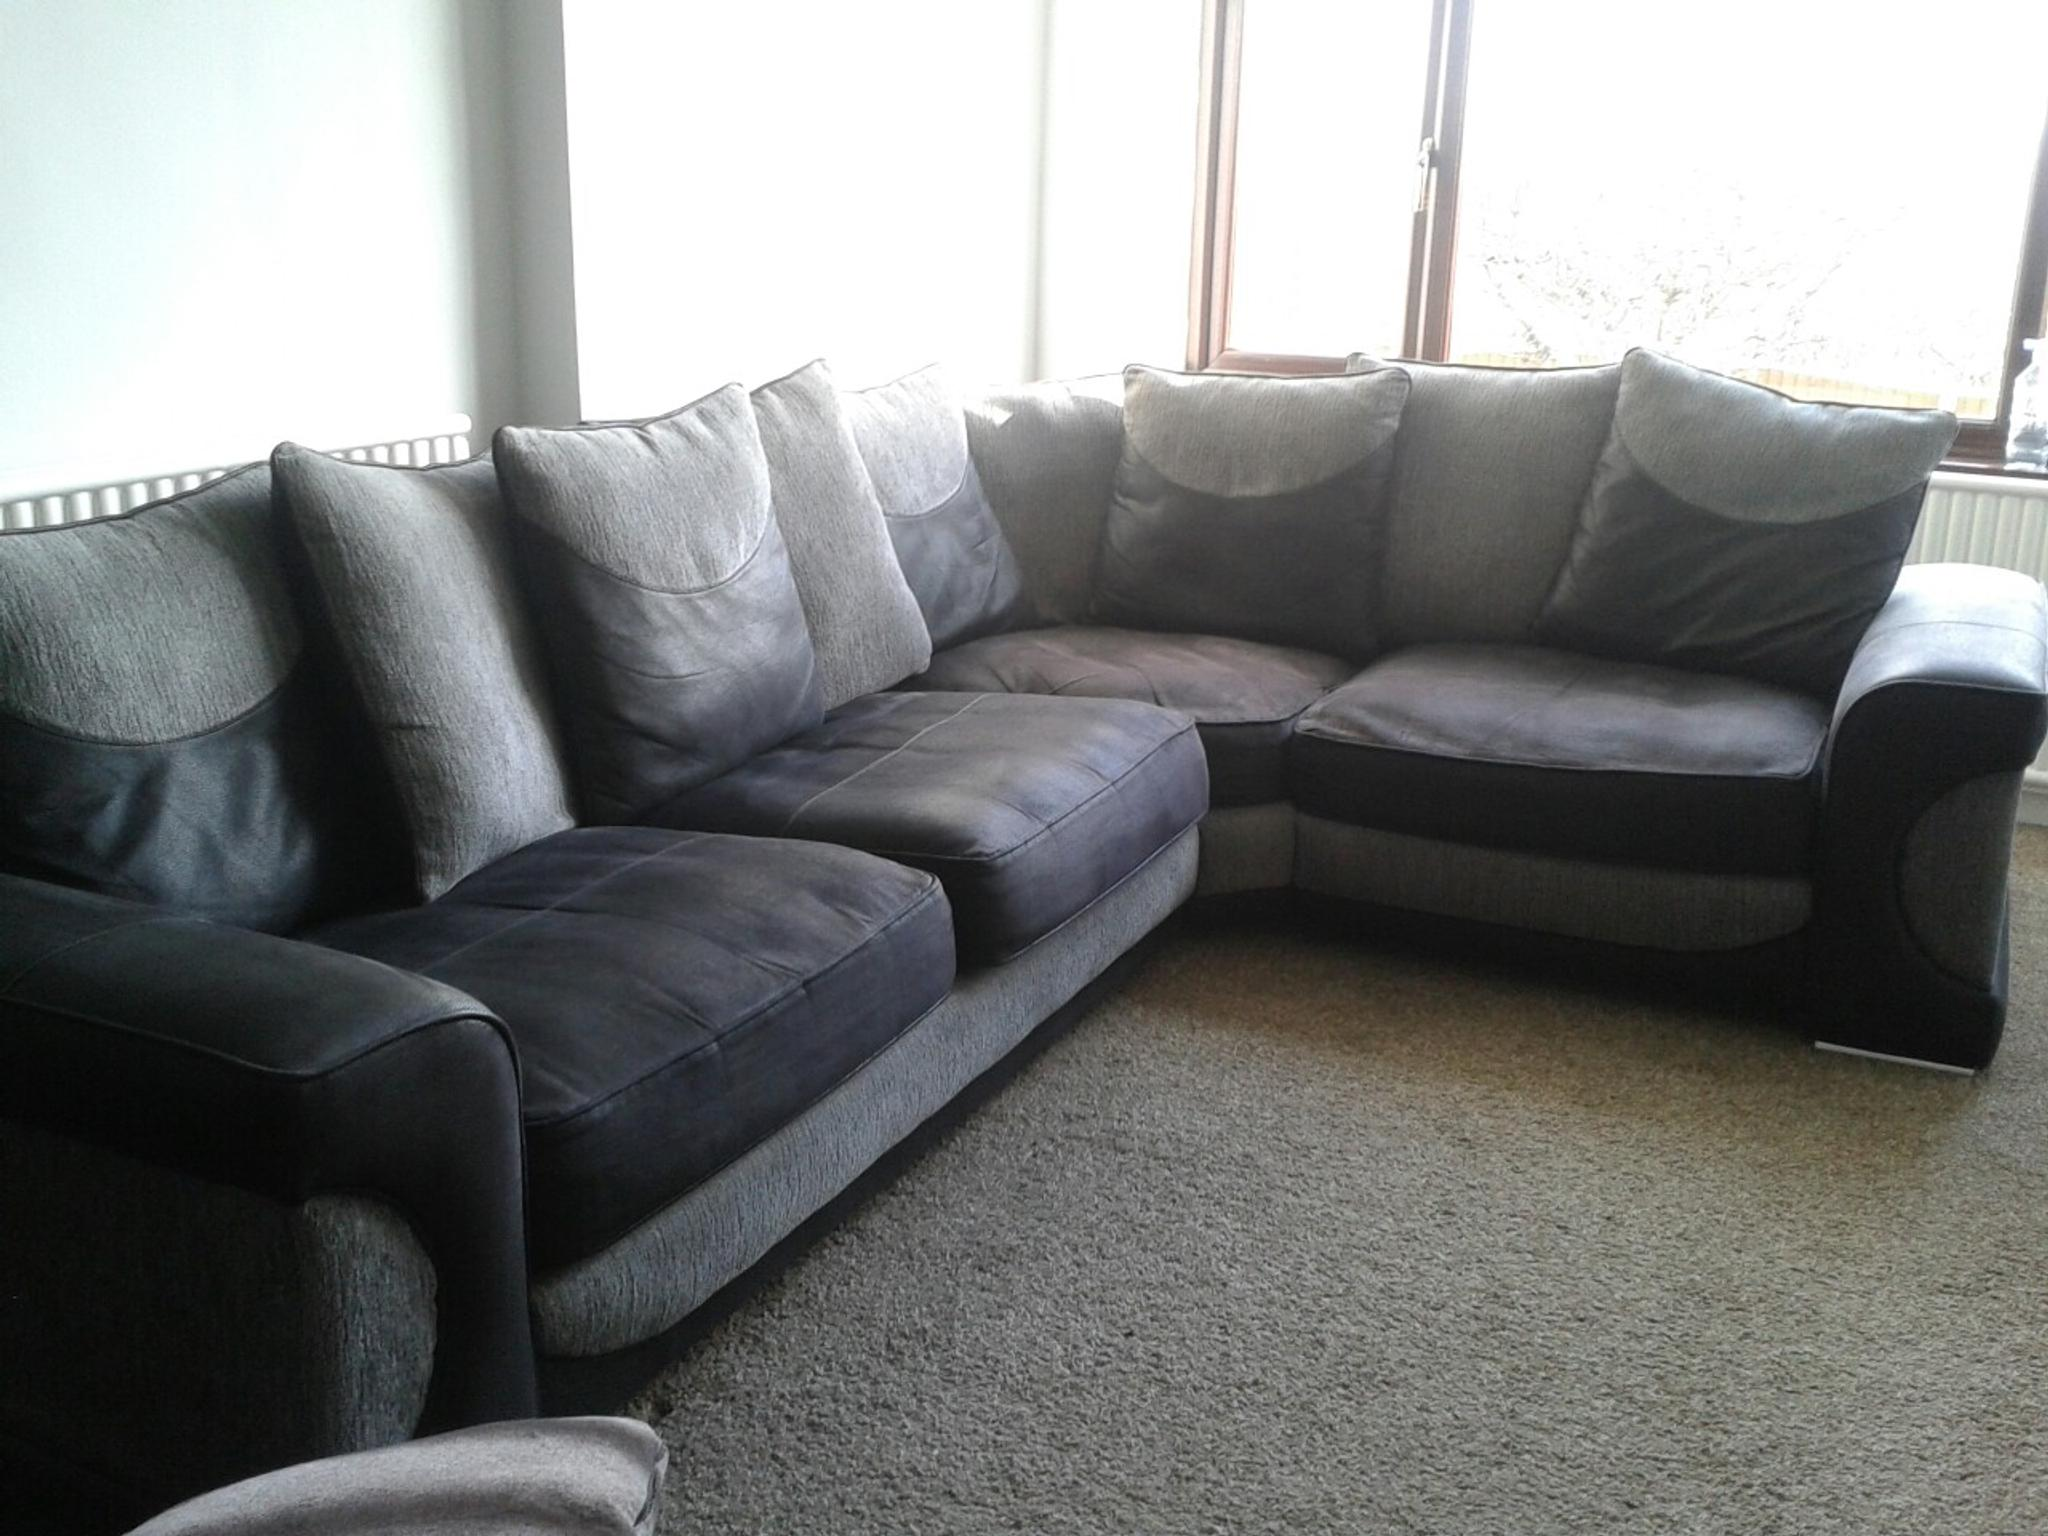 Large Sofology Corner Sofa Black And Grey In Stoke On Trent For 250 00 For Sale Shpock